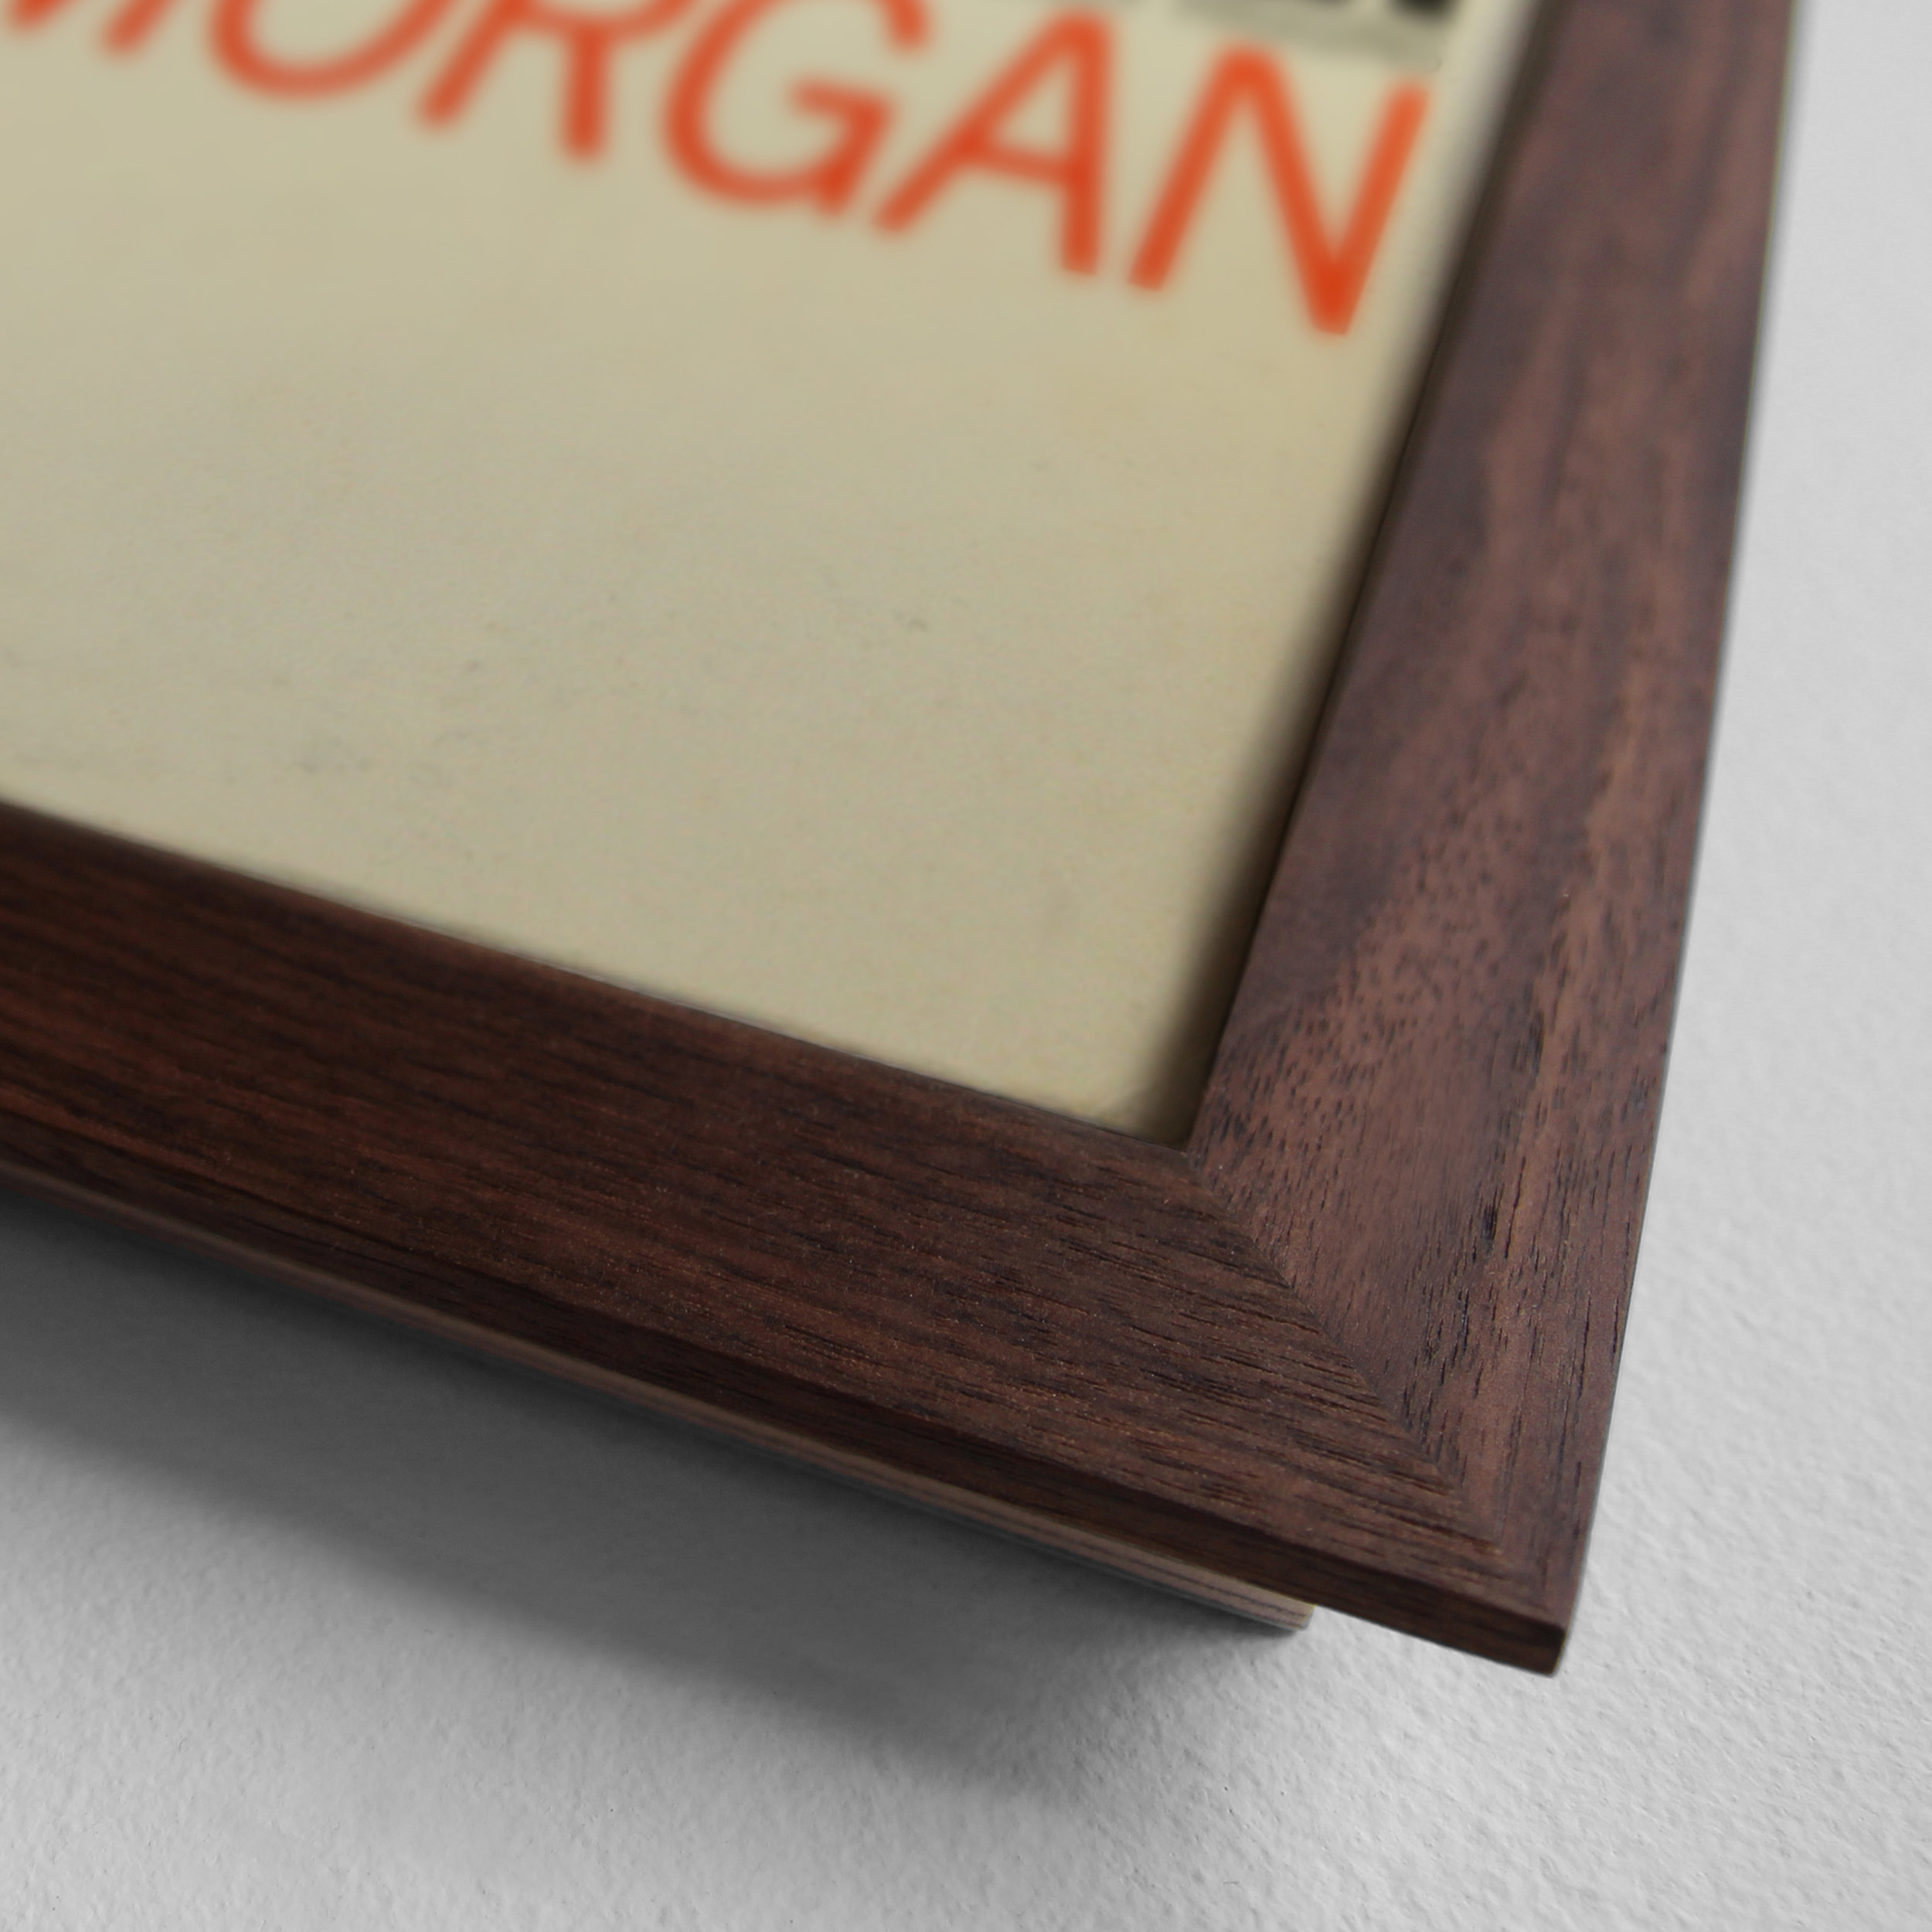 Sonntagsstaat-RecordFrameWalnut-Detail02.jpg